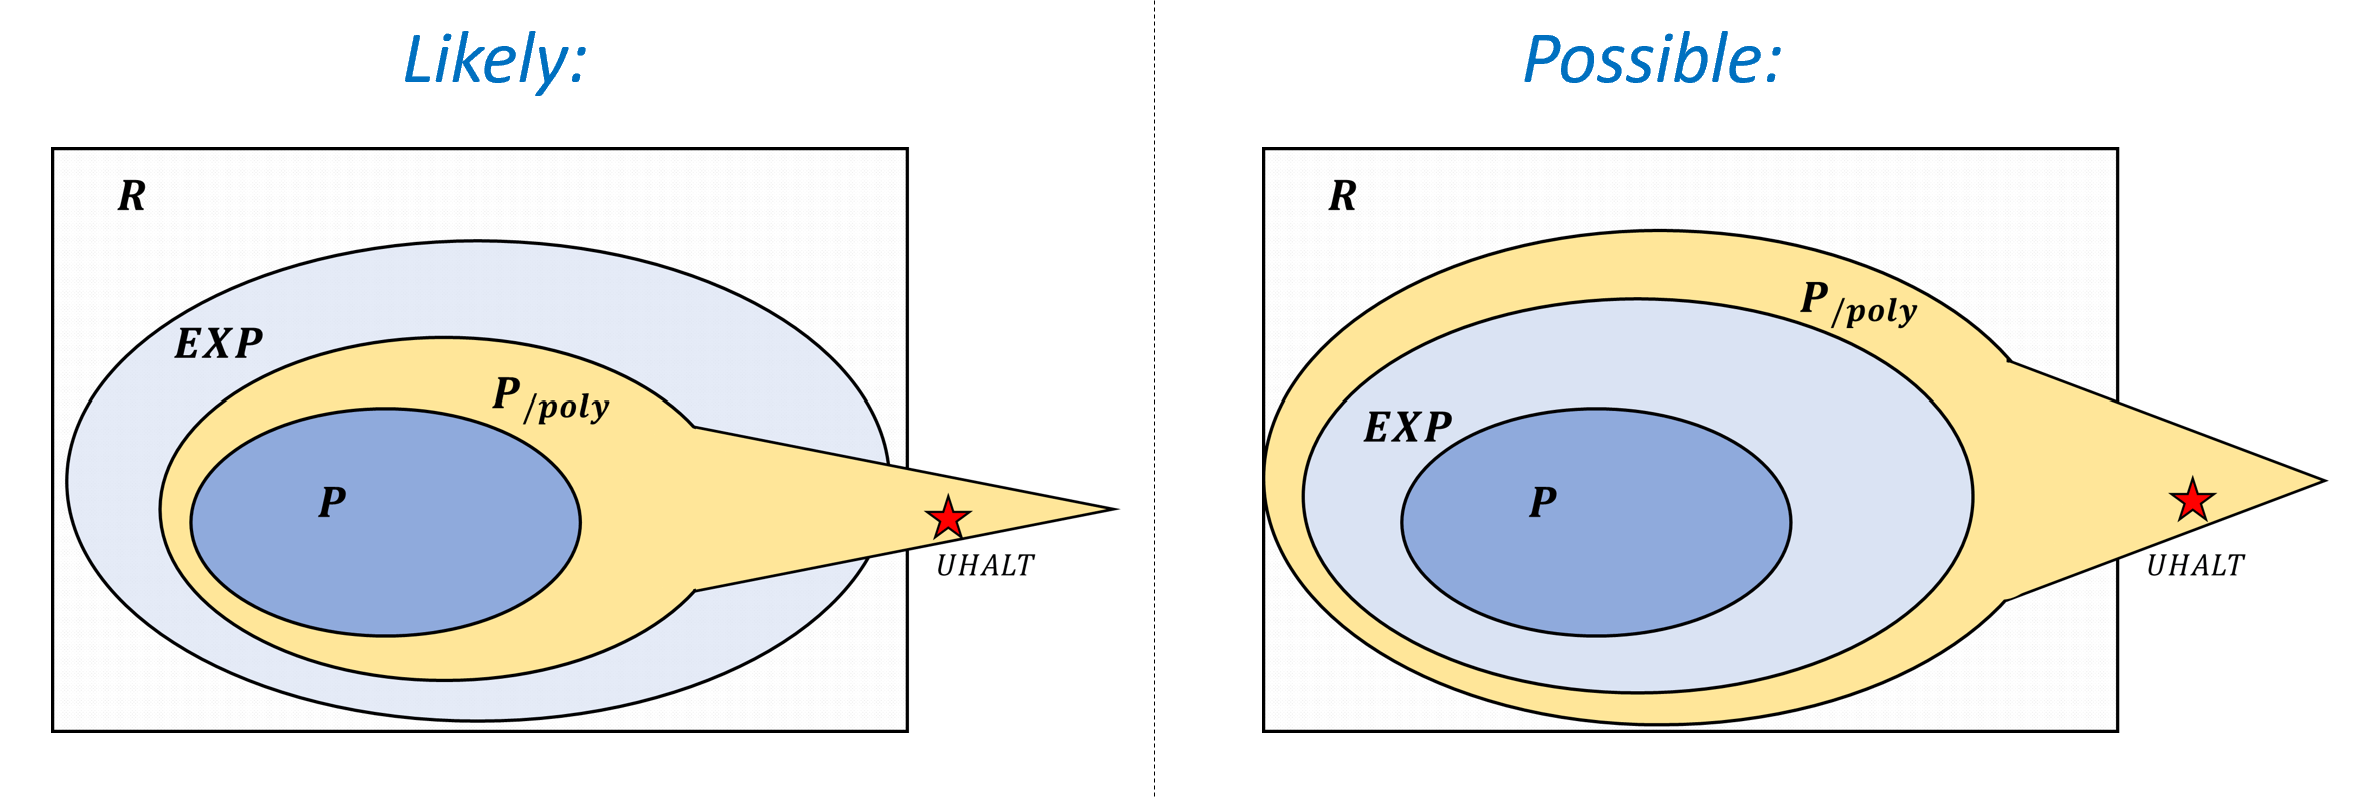 12.10: Relations between \mathbf{P}, \mathbf{EXP}, and \mathbf{P_{/poly}}. It is known that \mathbf{P} \subseteq \mathbf{EXP}, \mathbf{P} \subseteq \mathbf{P_{/poly}} and that \mathbf{P_{/poly}} contains uncomputable functions (which in particular are outside of \mathbf{EXP}). It is not known whether or not \mathbf{EXP} \subseteq \mathbf{P_{/poly}} though it is believed that \mathbf{EXP} \not\subseteq \mathbf{P_{/poly}}.